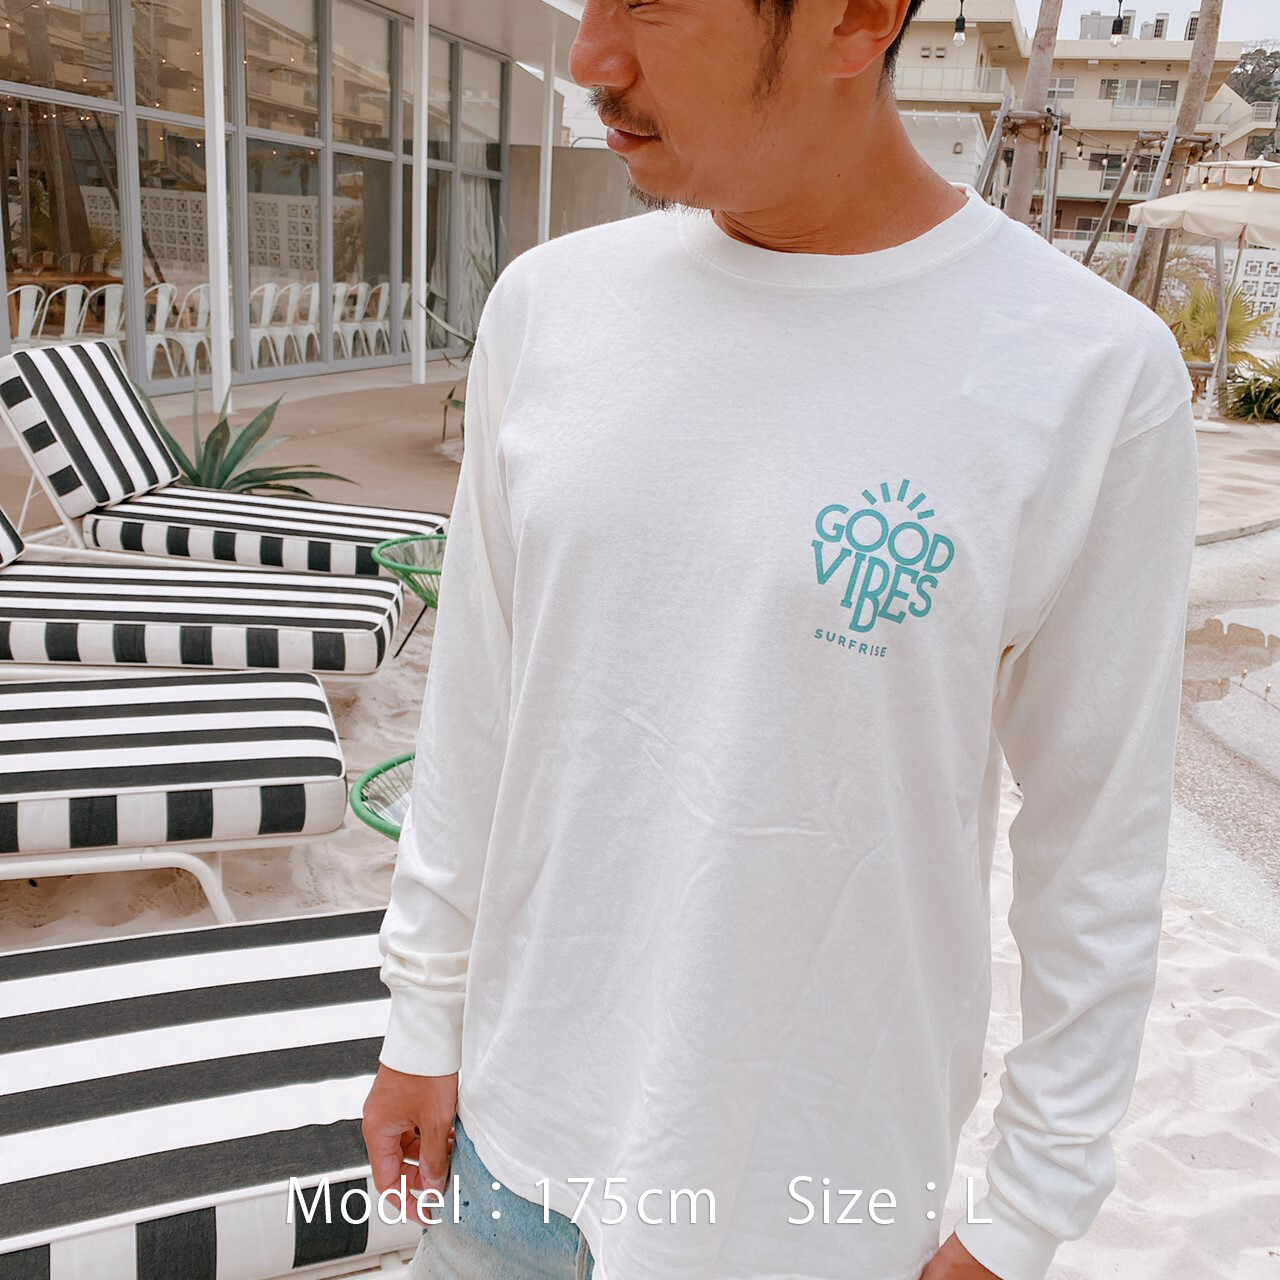 GOOD VIBES L/S Tee - Vintage white